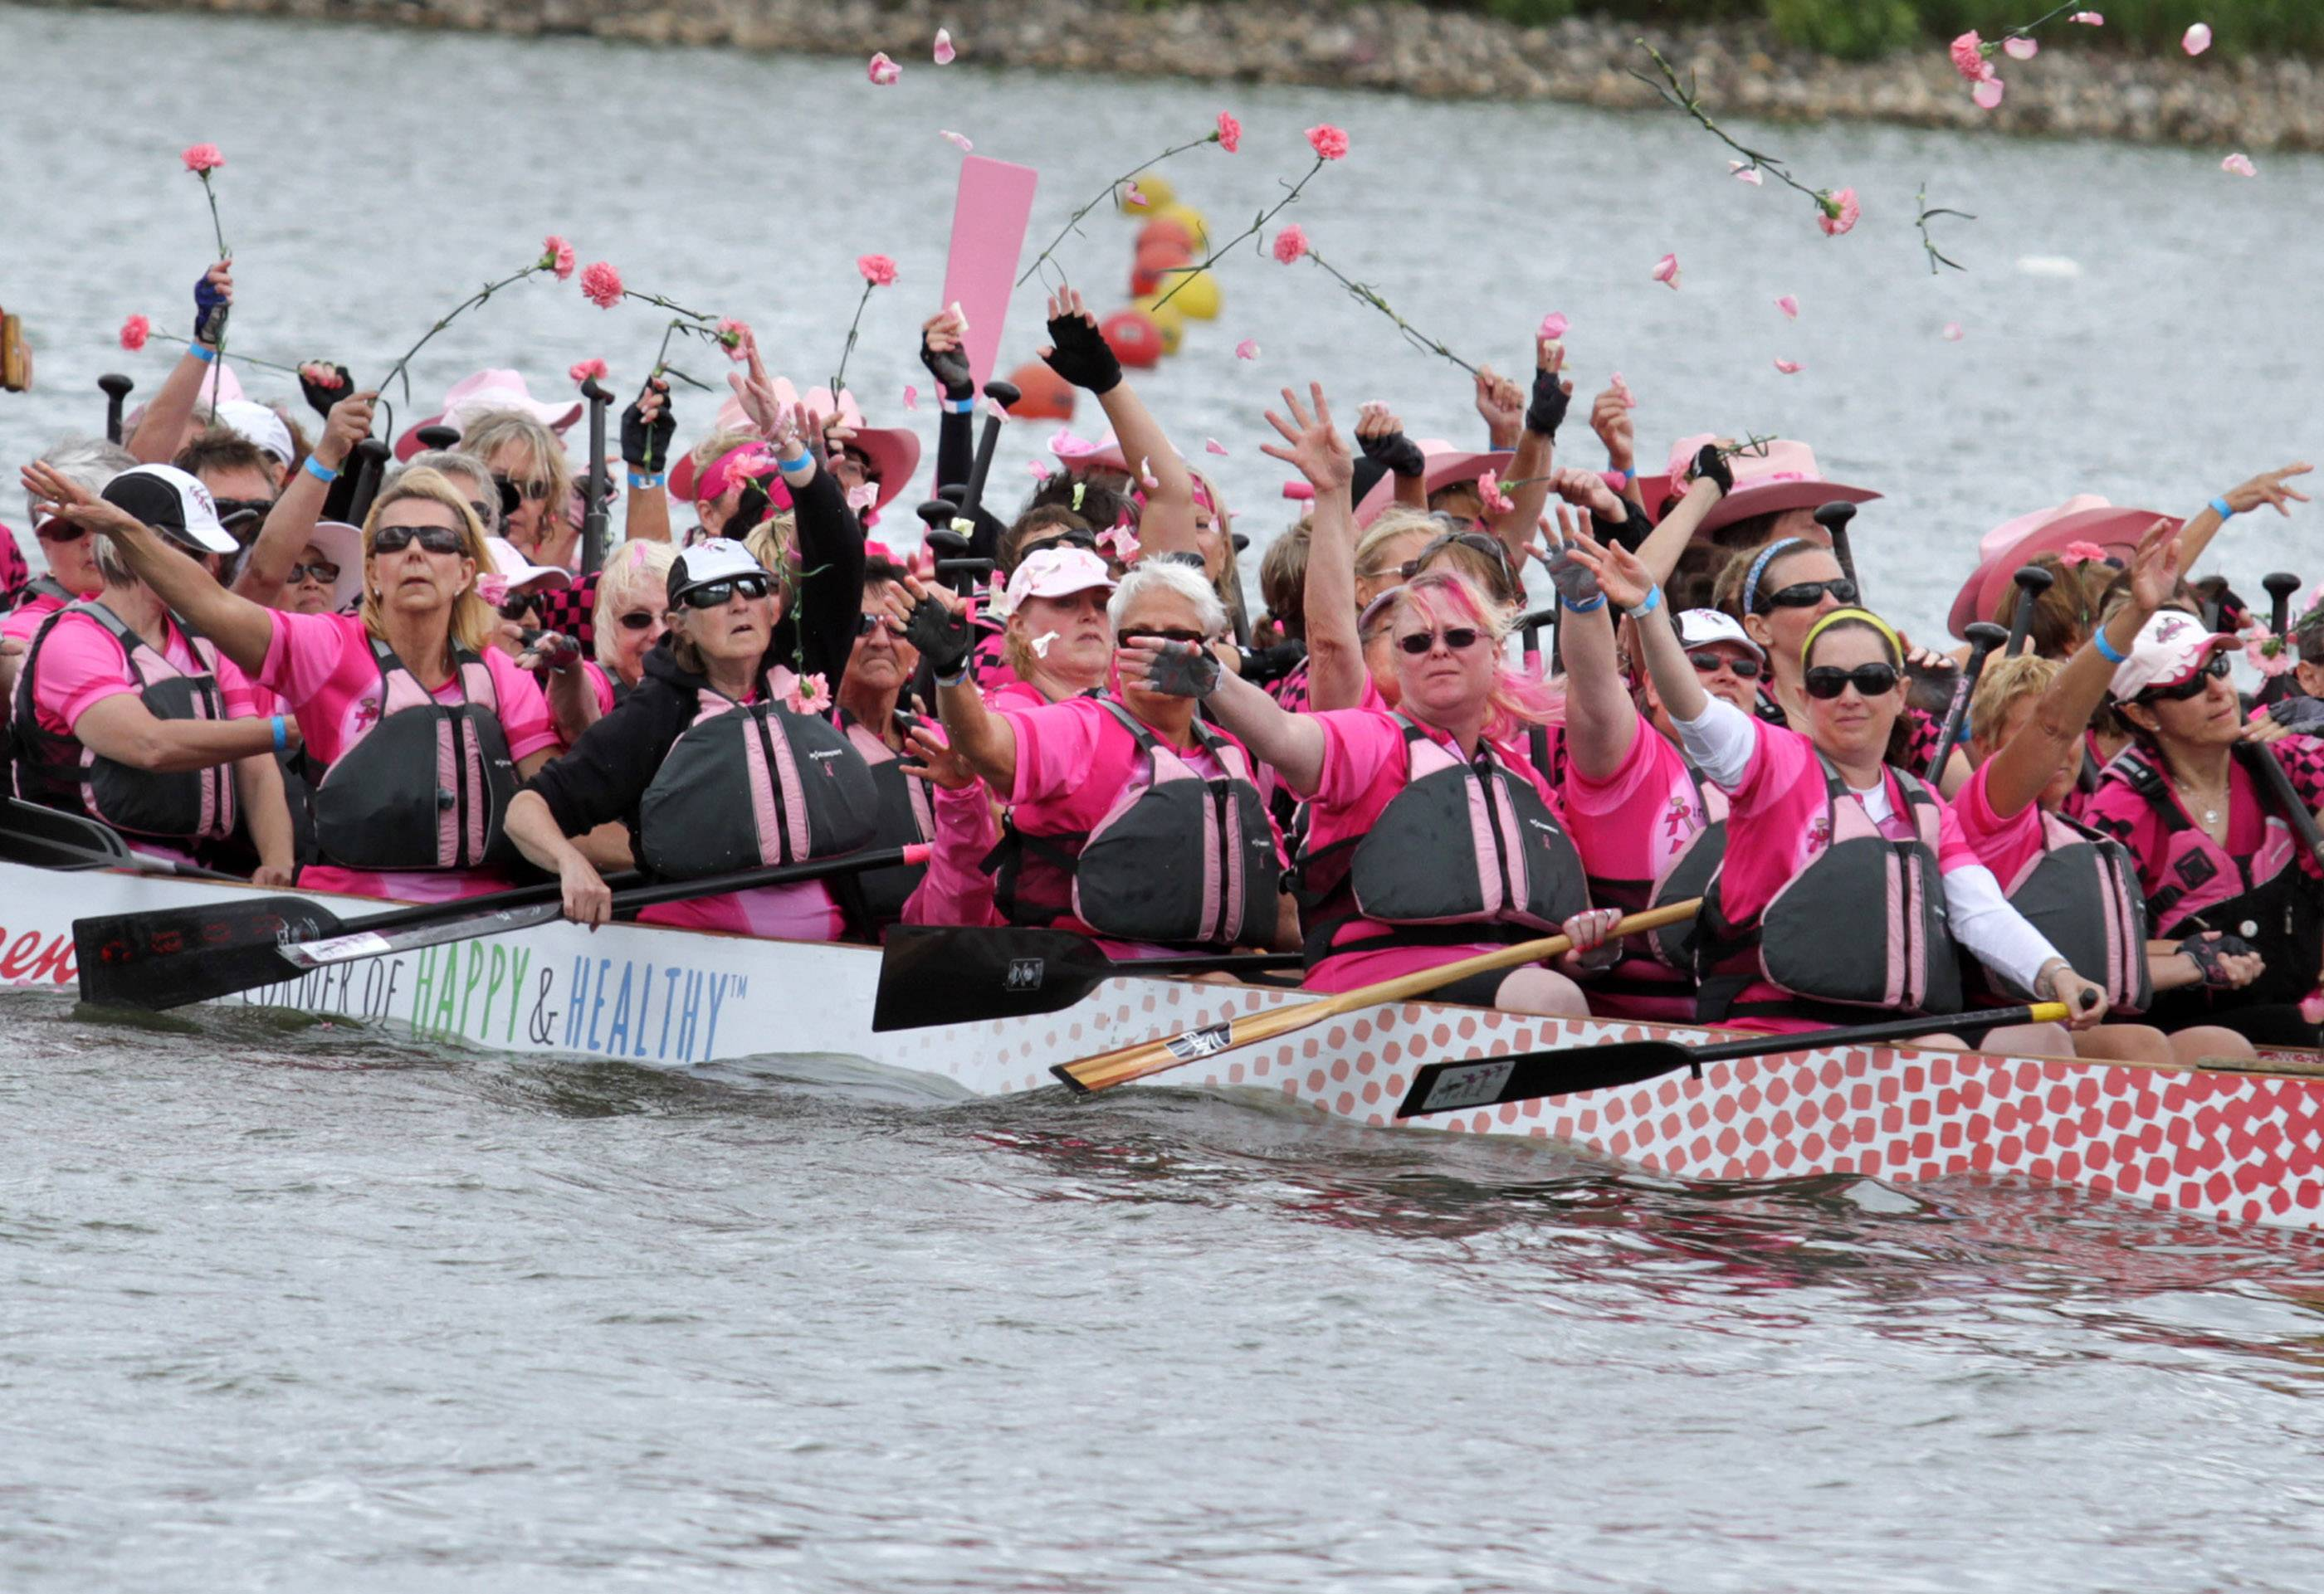 Cancer survivor teams wore pink and held a ceremony throwing roses into Lake Arlington prior to the 2013 event.